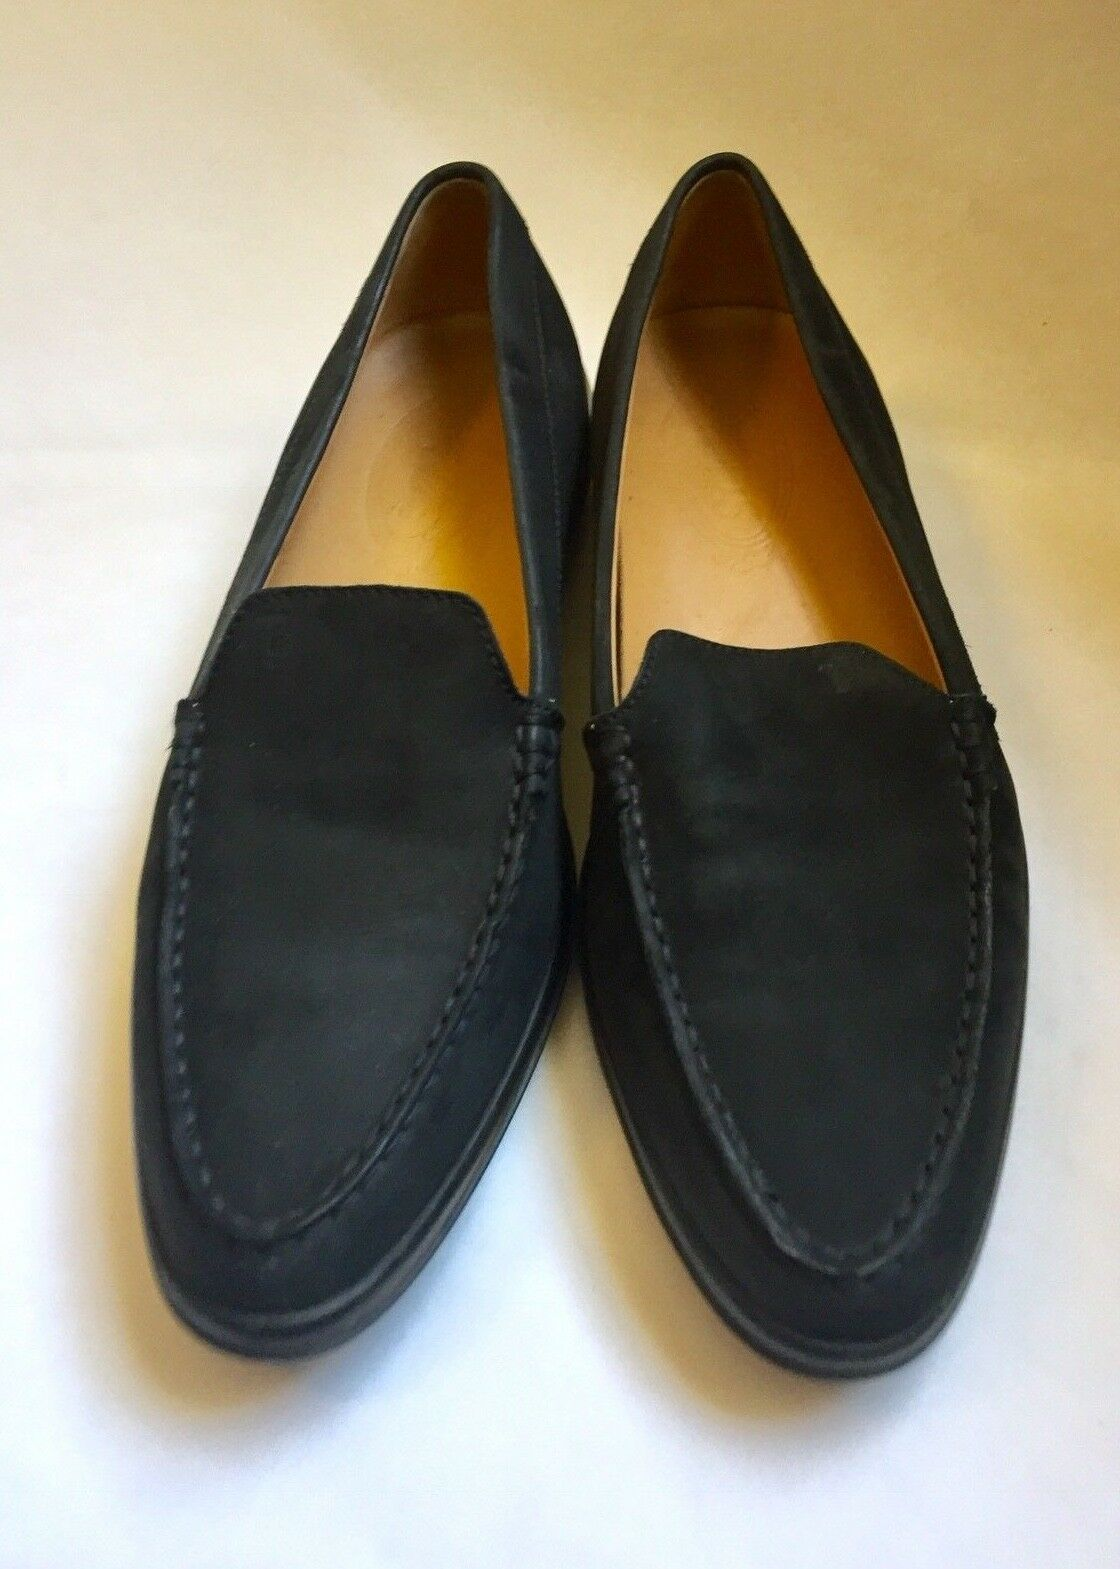 Tods Black Leather Round Toe Slide On Flats Loafers Size 8.5